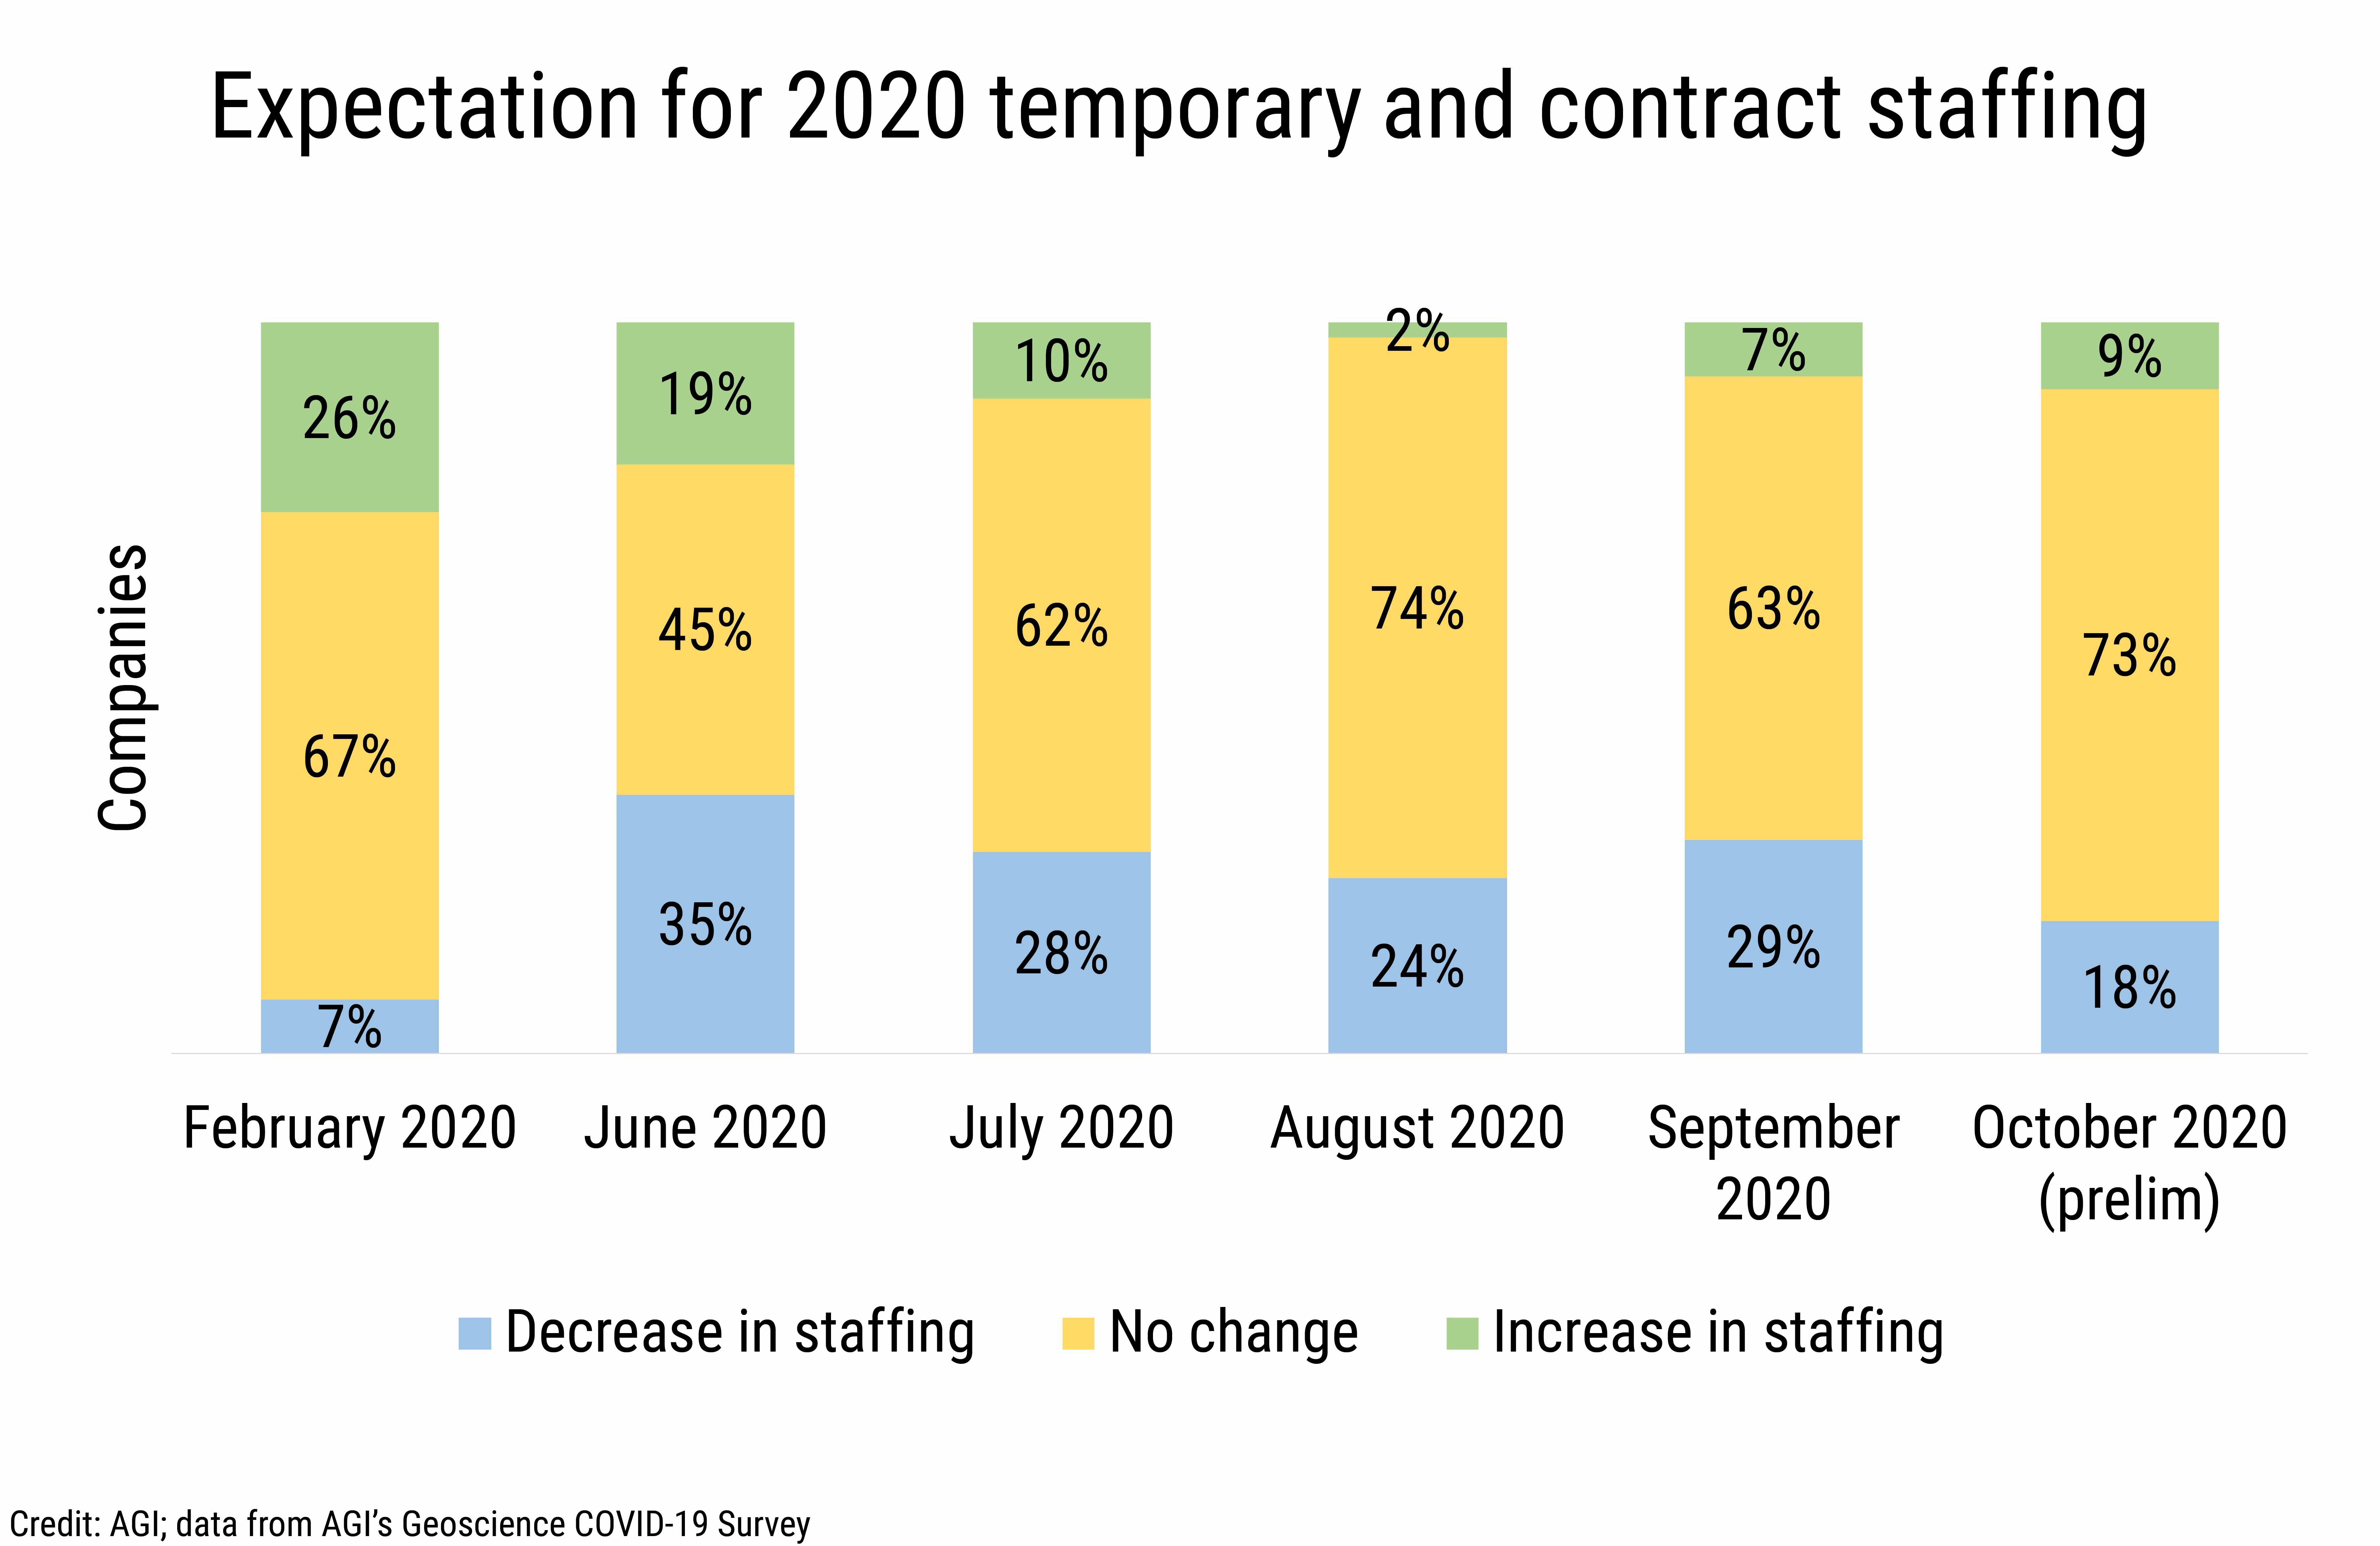 DB_2020-027 chart 05:  Expectation for 2020 temporary and contract staffing (Credit: AGI; data from AGI's Geoscience COVID-19 Survey)